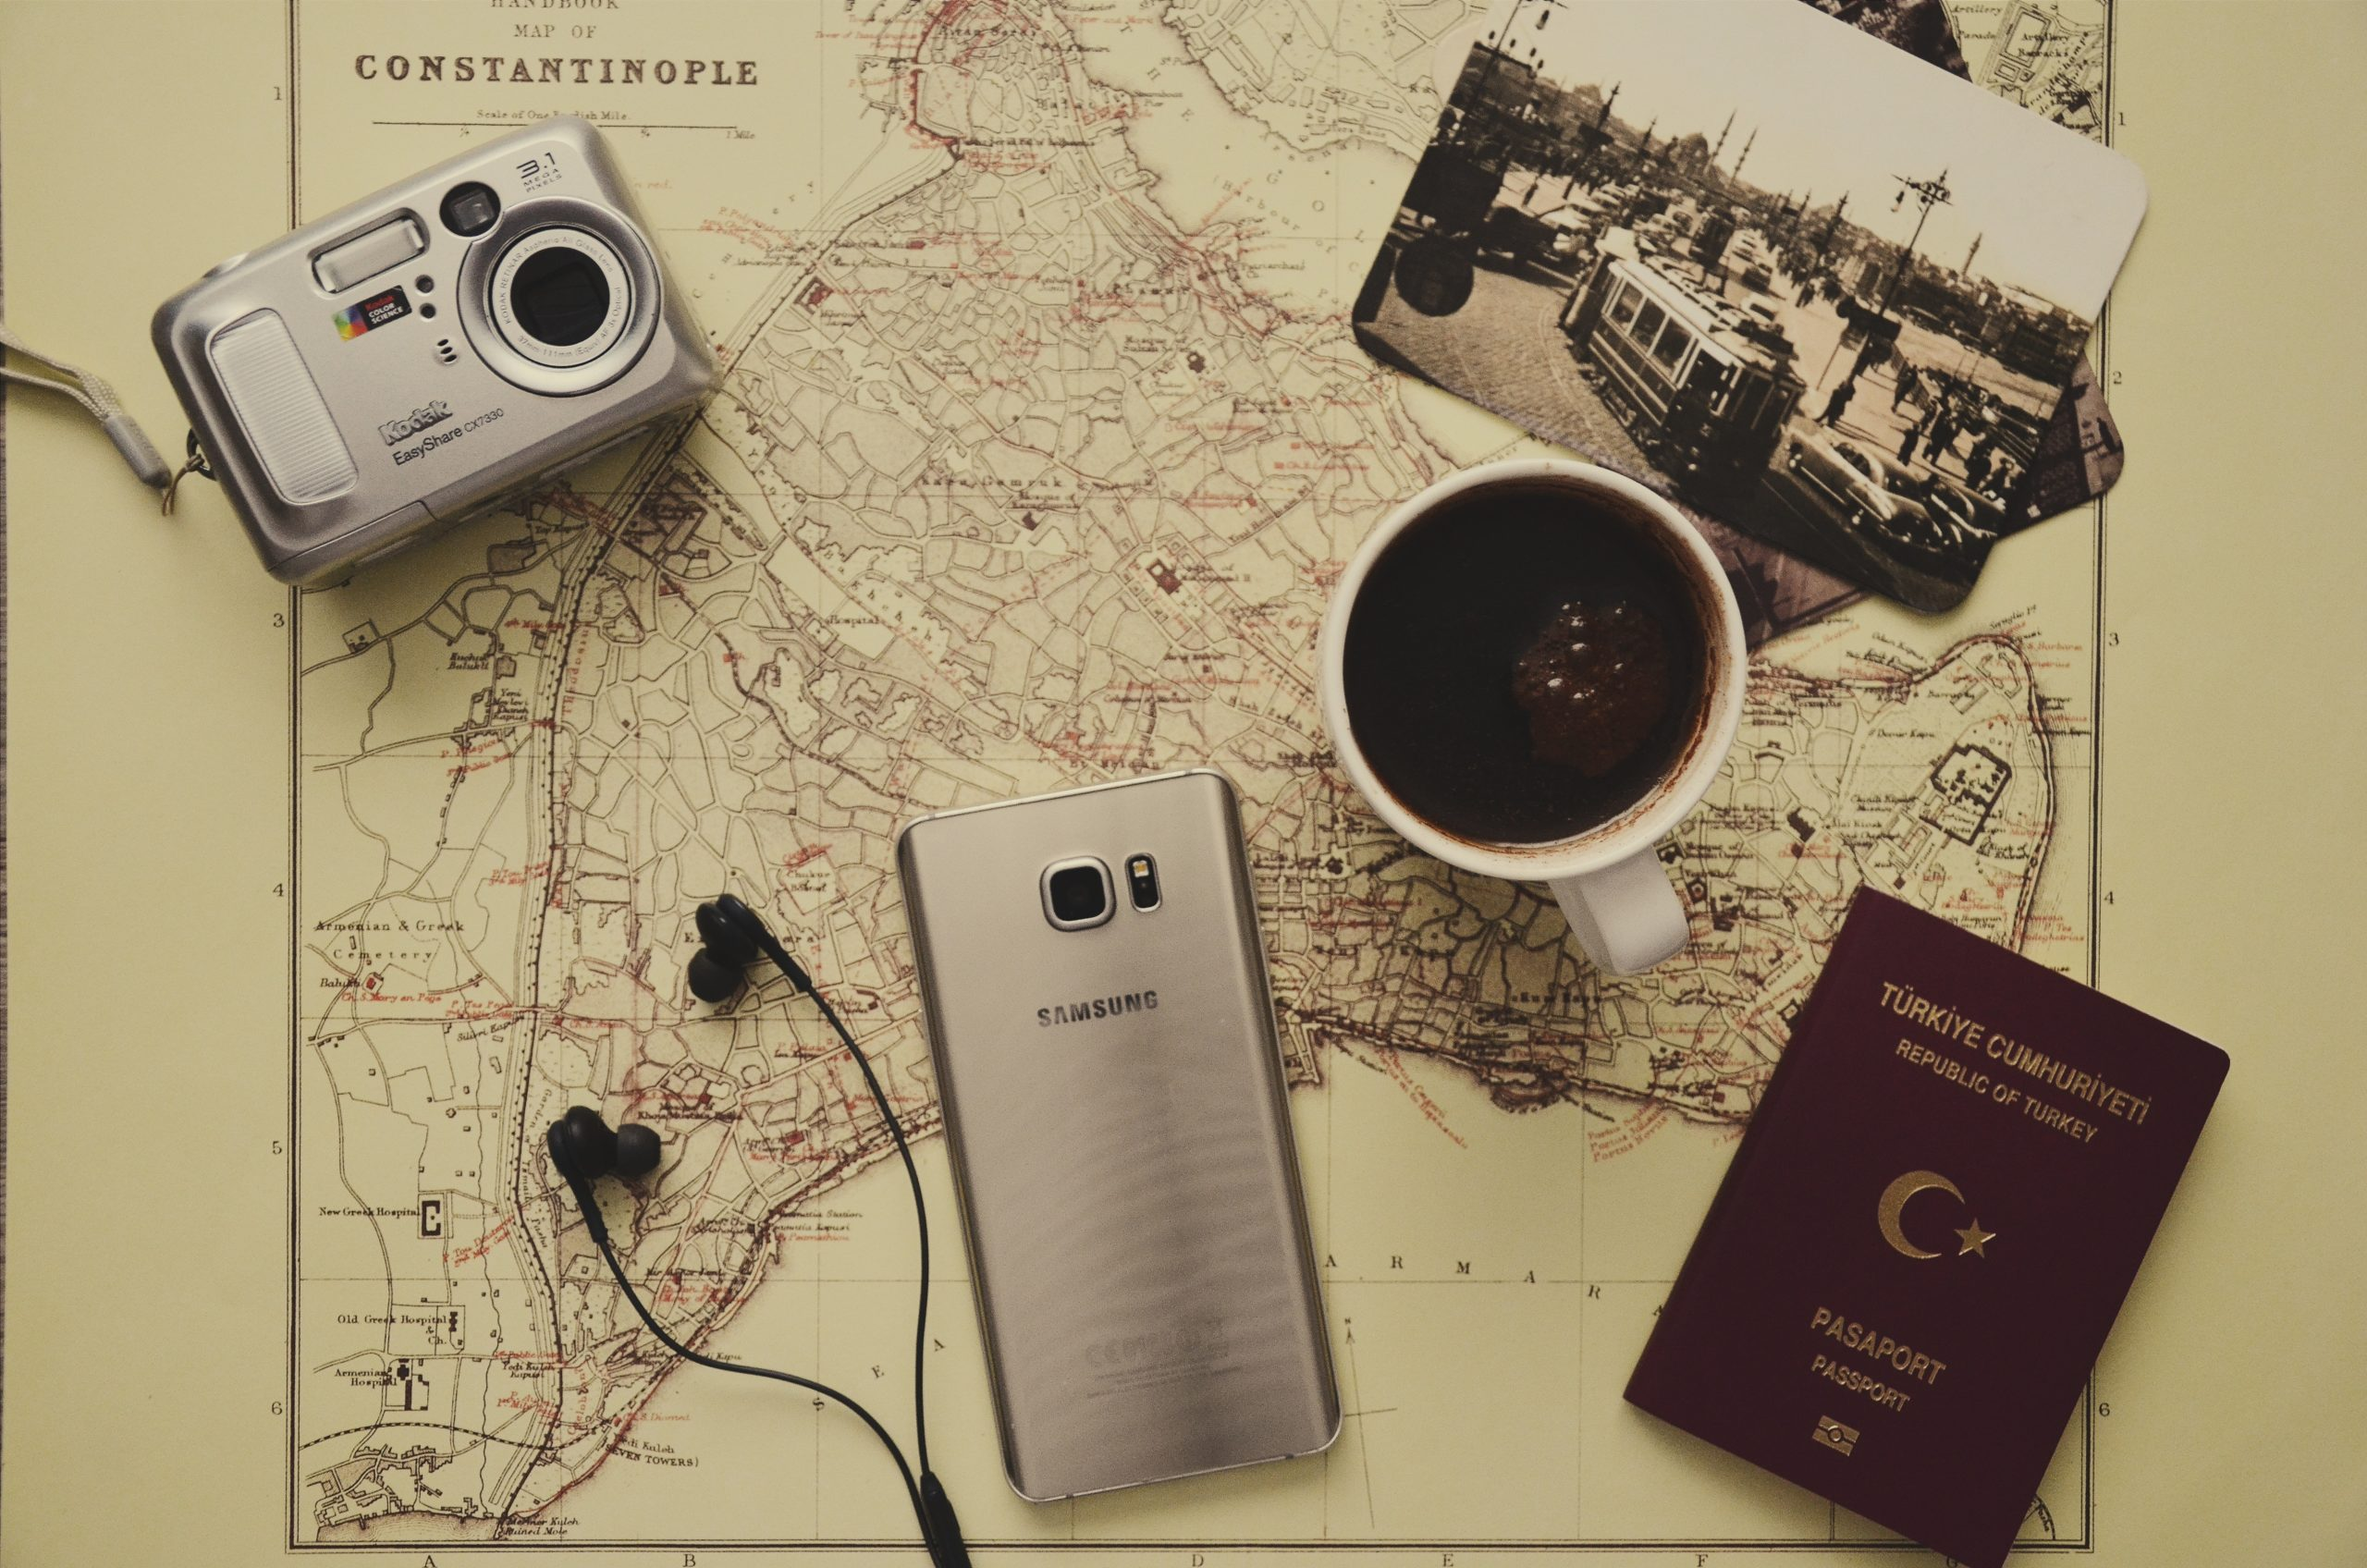 Travel Gadgets - How to Find the Best Gadgets For Travelling